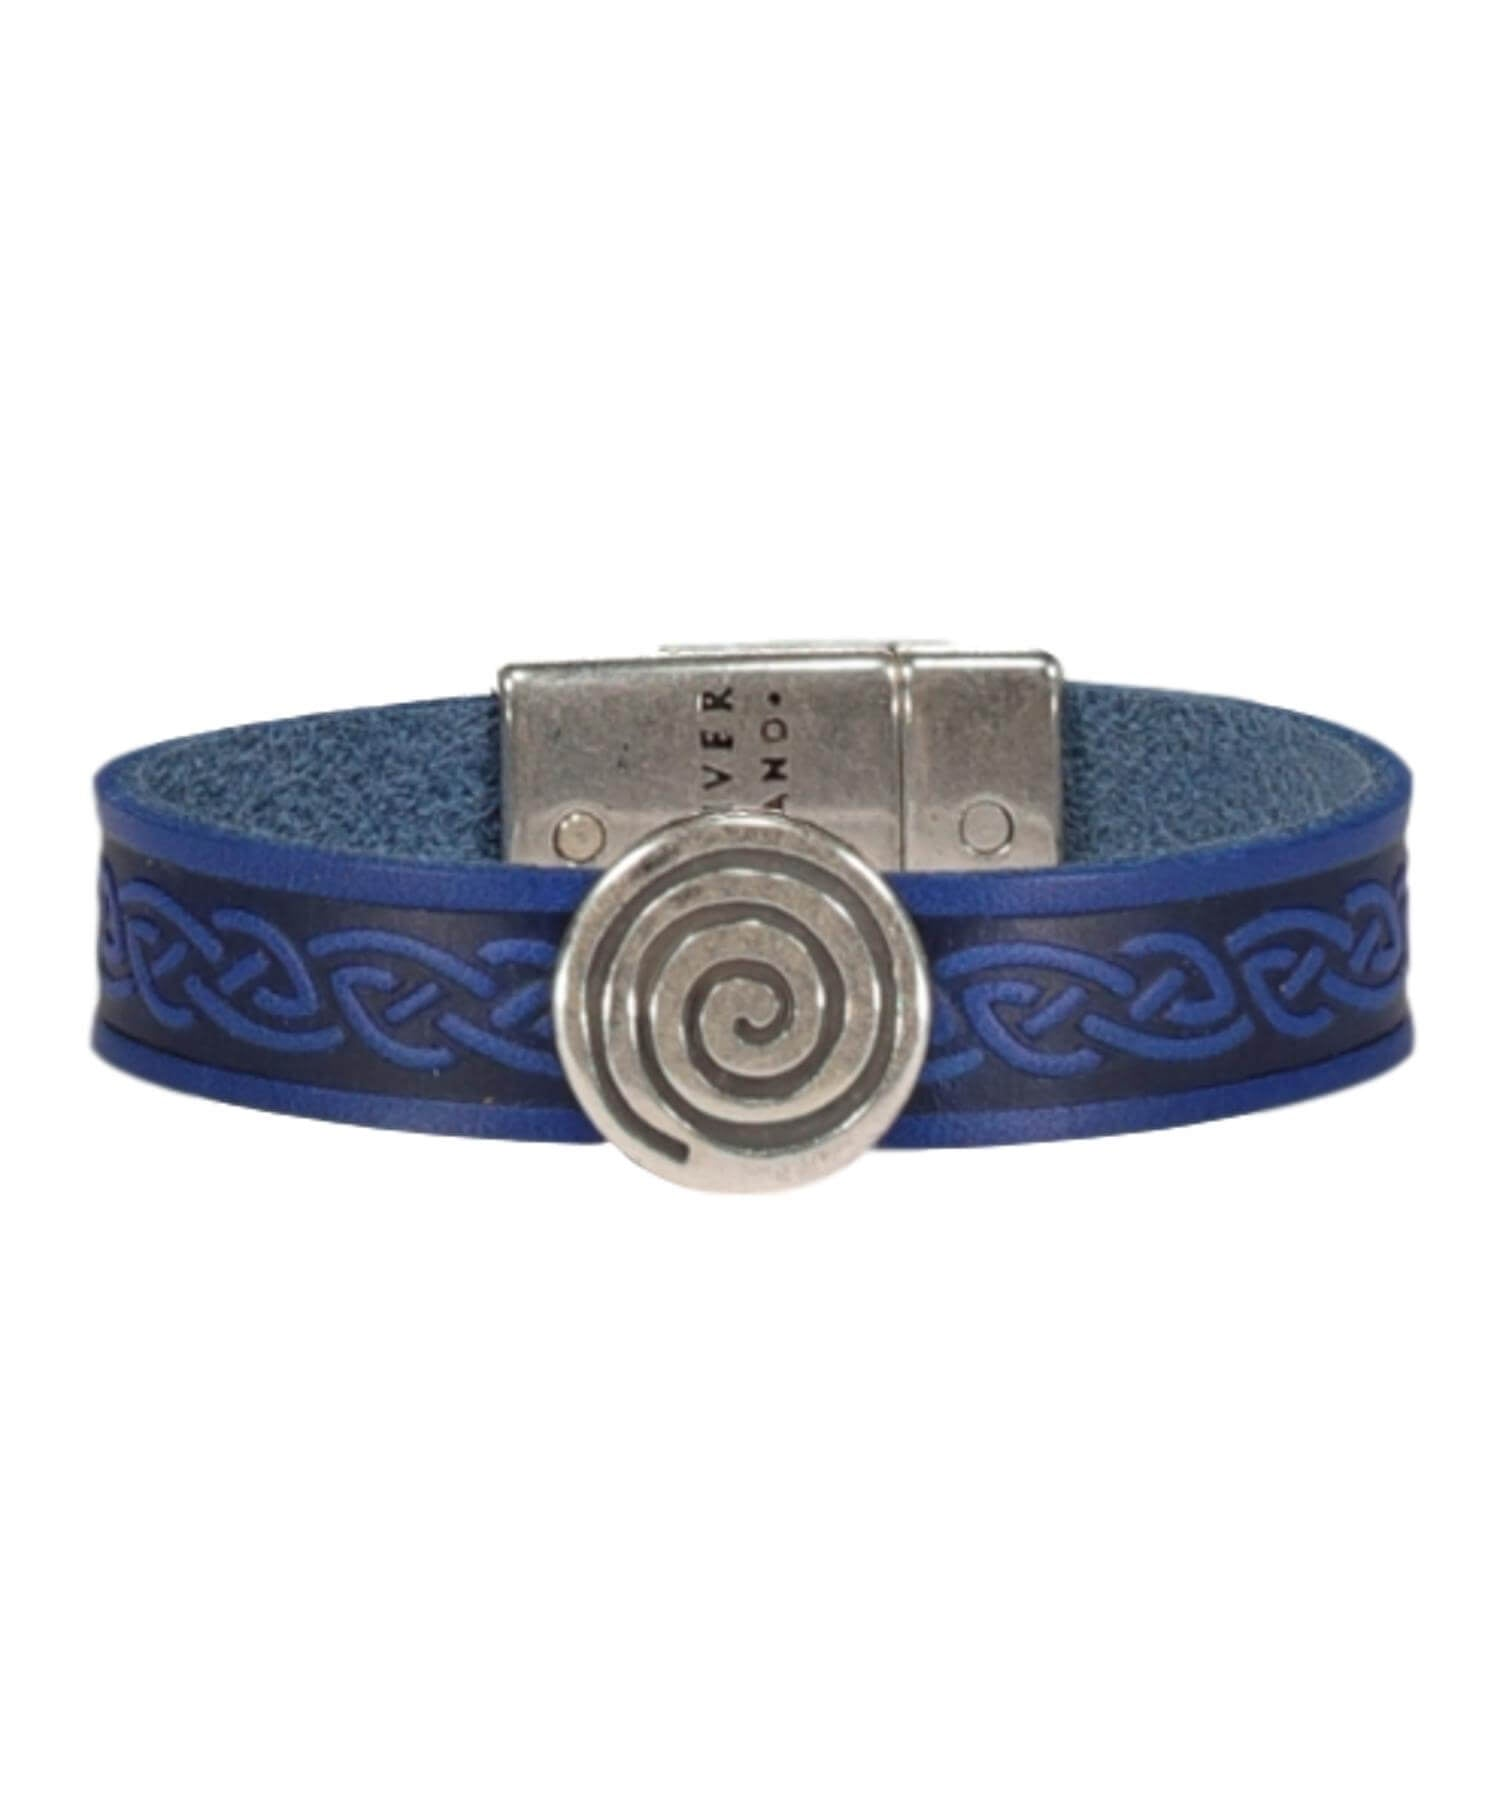 Spiral Cuff - Blue - [Lee River] - Jewellery - Irish Gifts